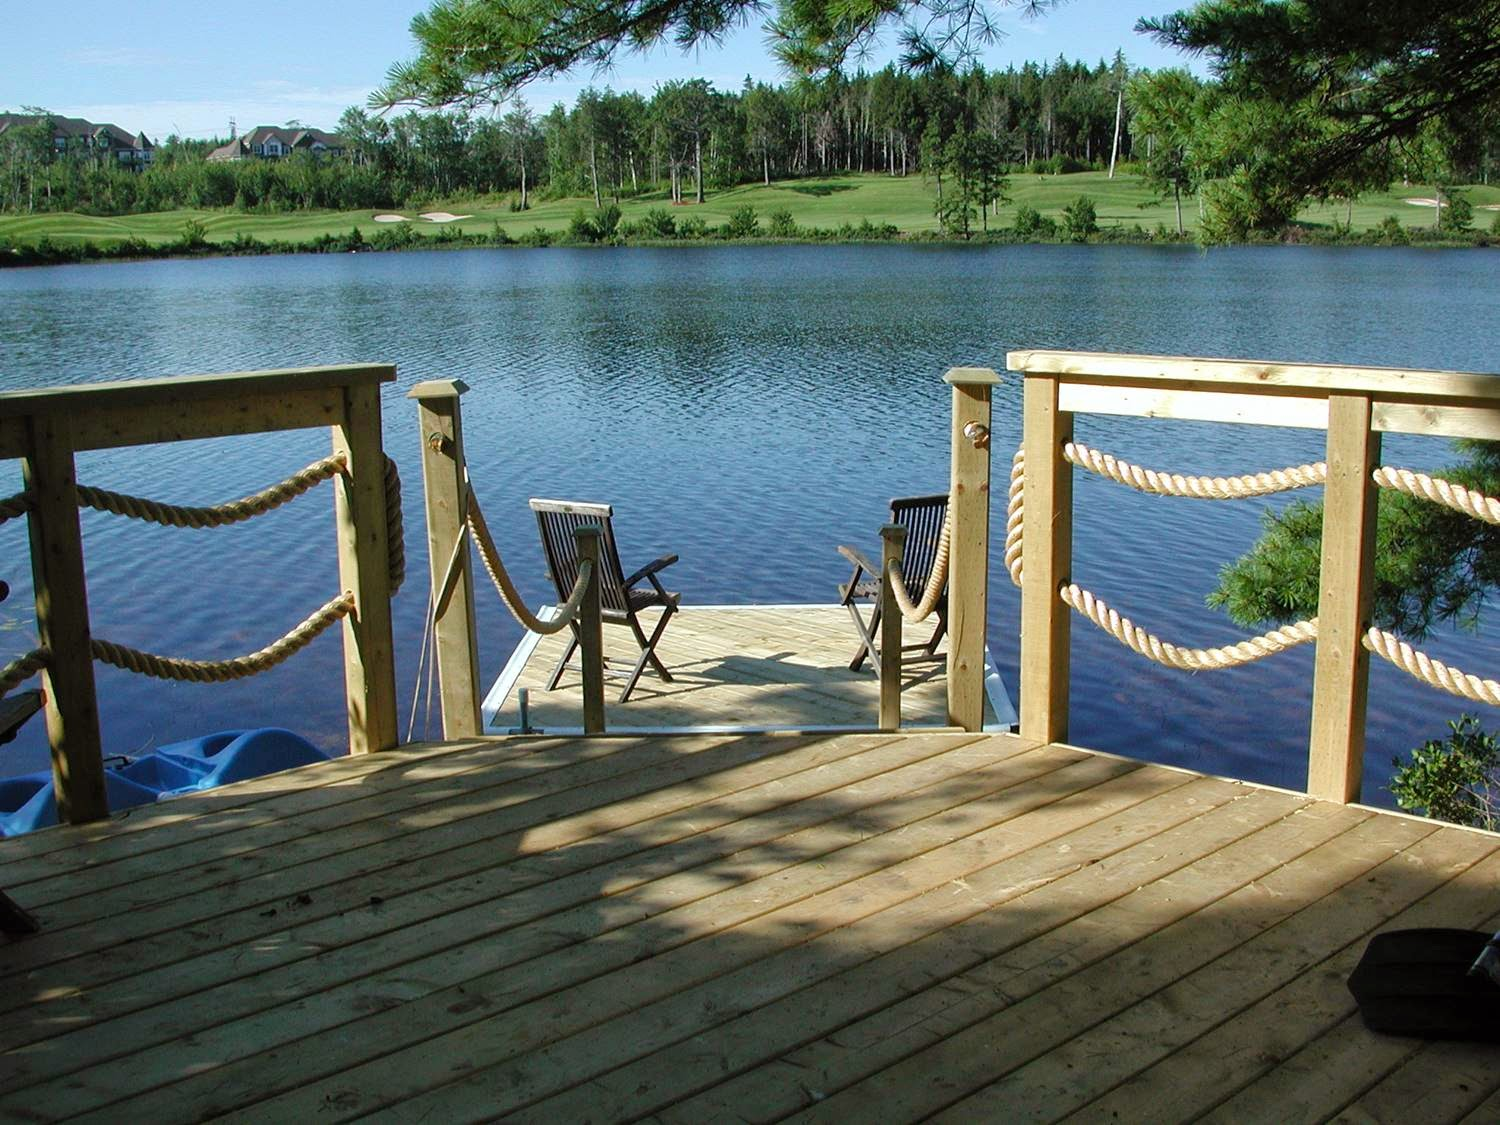 Pressure Treated Deck & Dock.  Designed by Archadeck